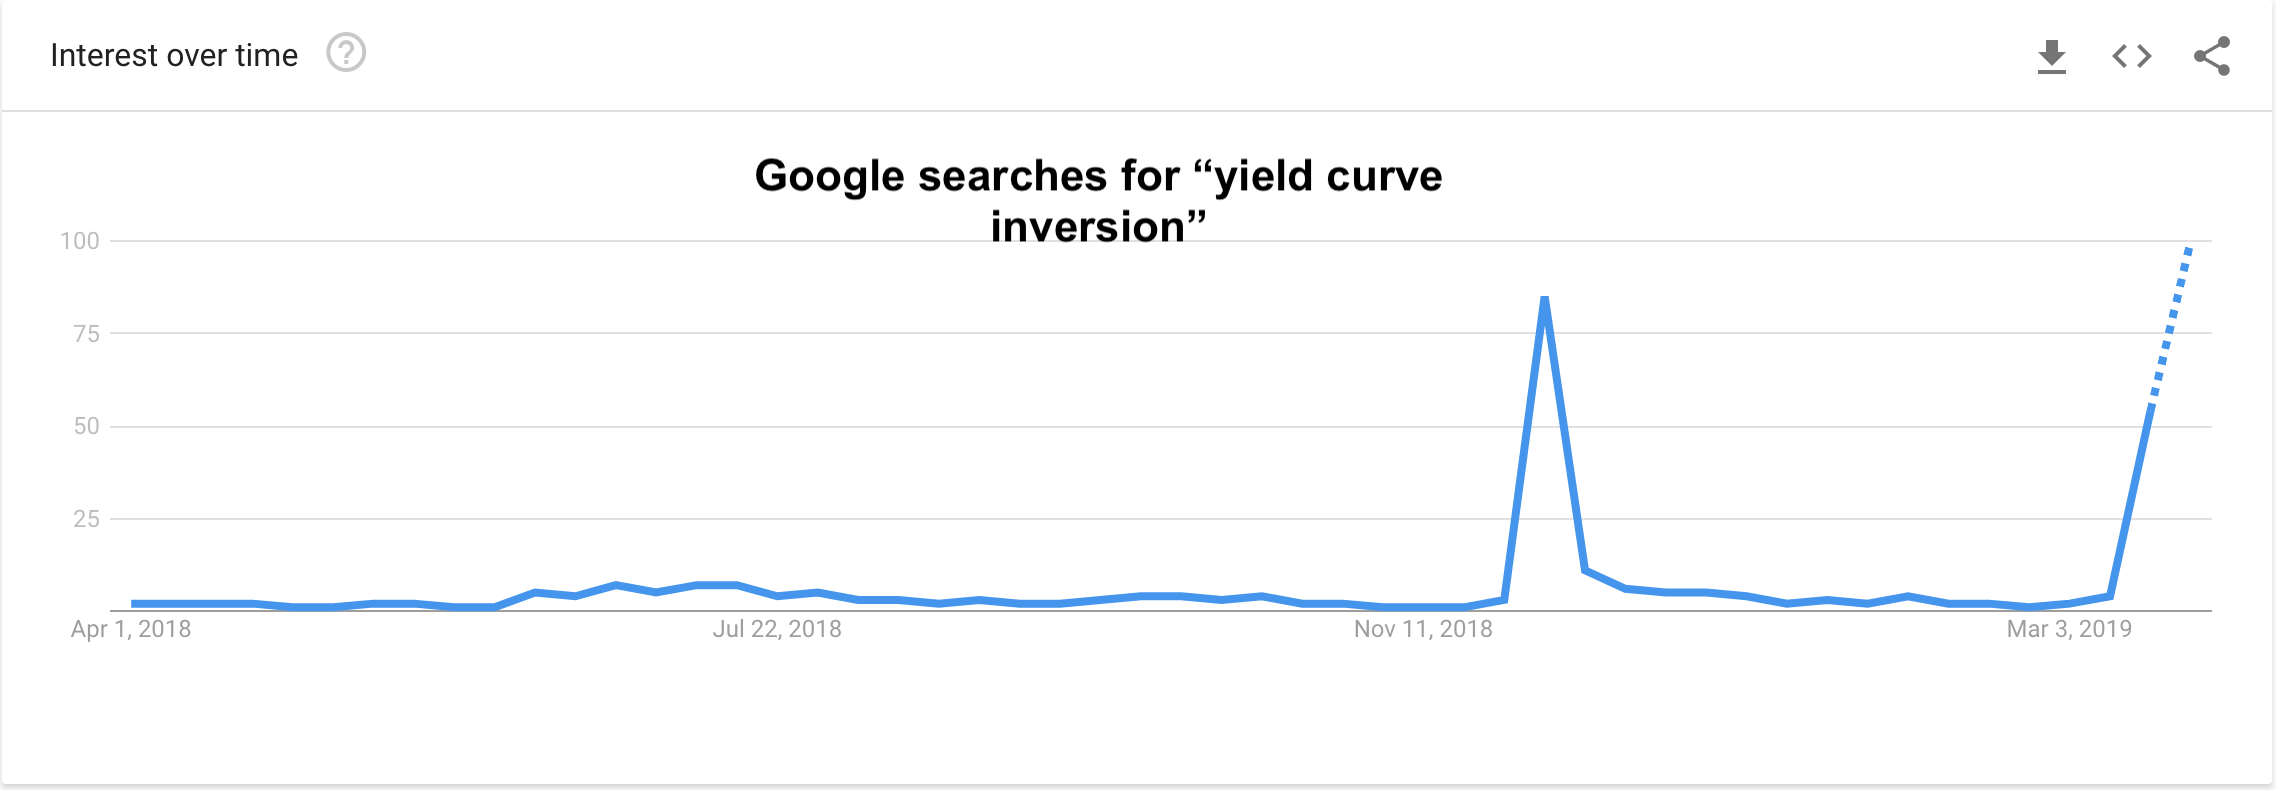 Google Searches - Yield Curve Inversion 2019